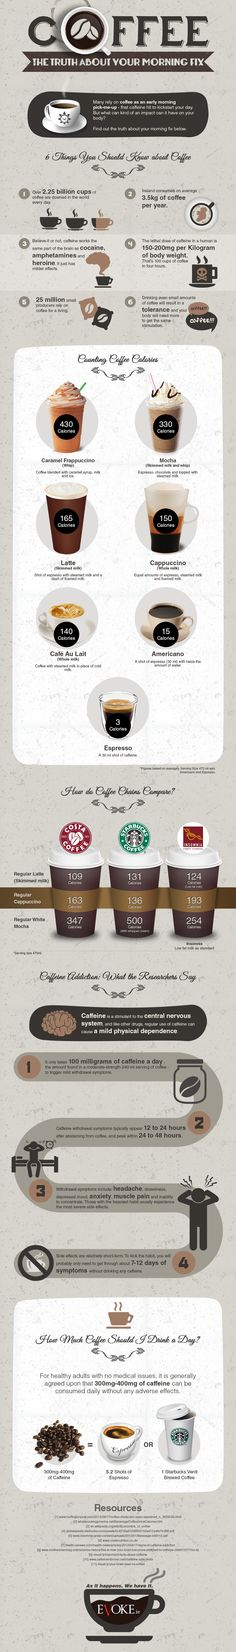 Is your morning fix of coffee unhealthy?